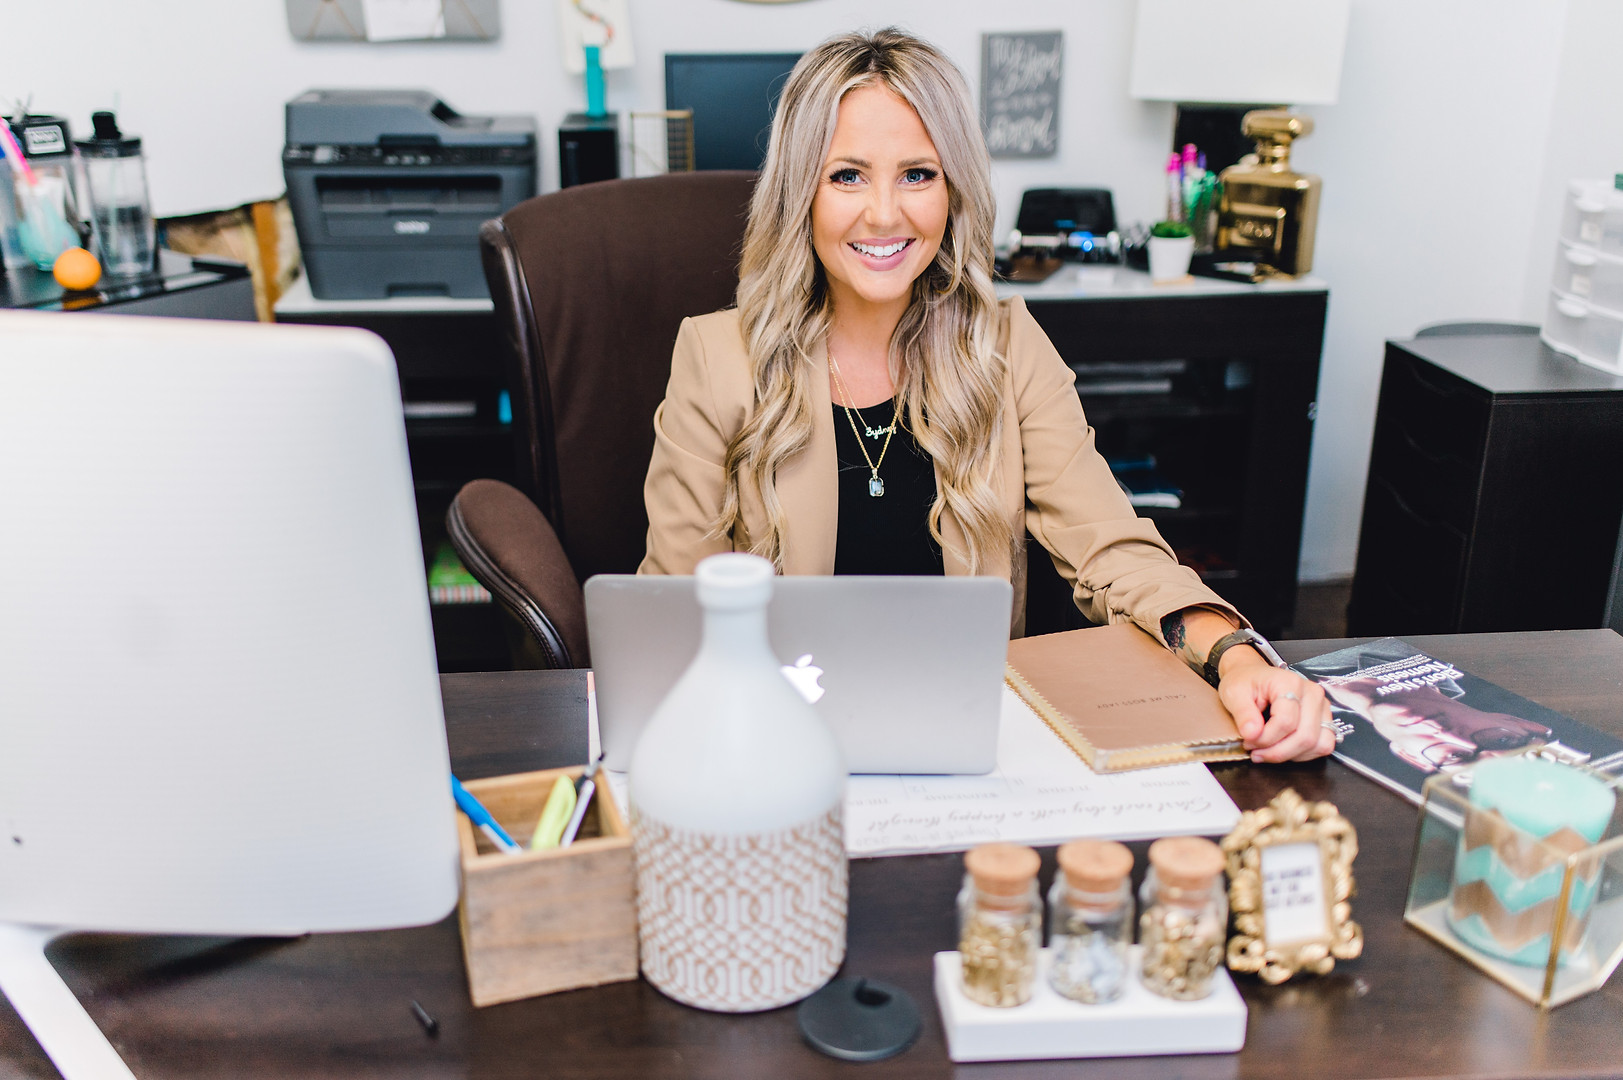 Sydney Summers Helms, Sydney Summers, Sydney's Shoppe of Beauty Founder and Owner